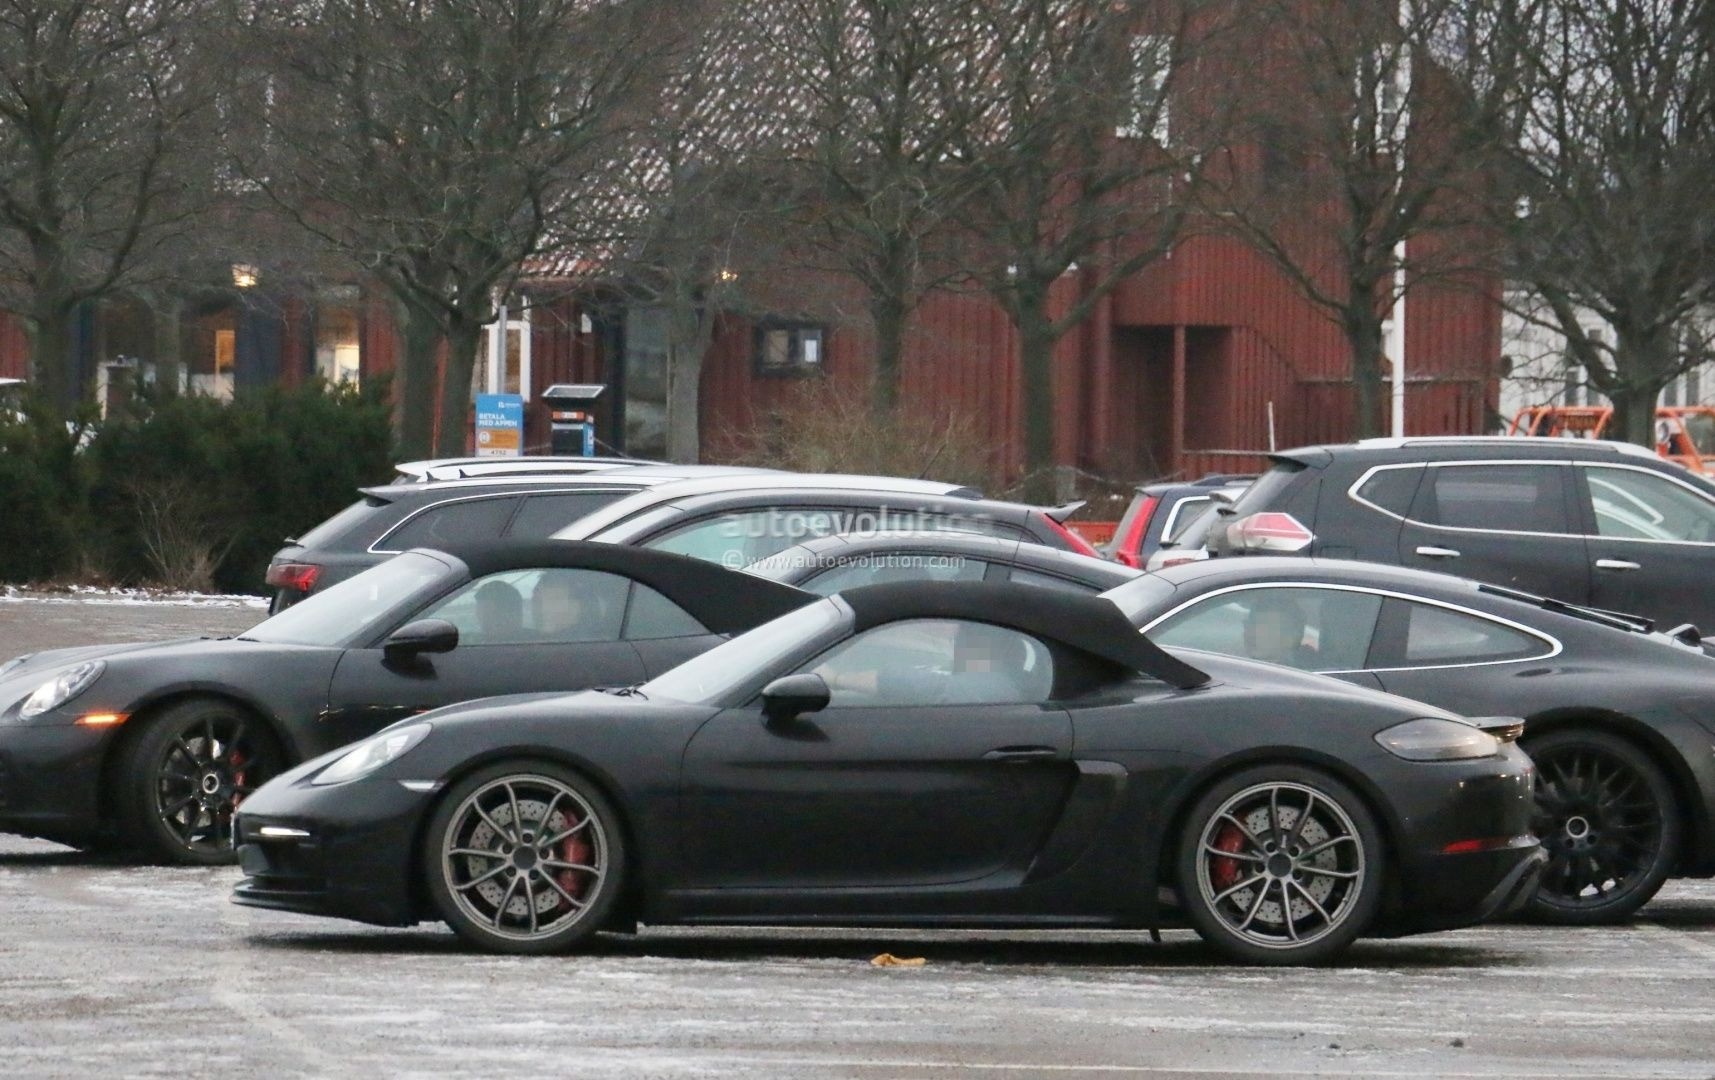 2019 Porsche 718 Boxster Spyder Spied In Traffic 911 Gt3